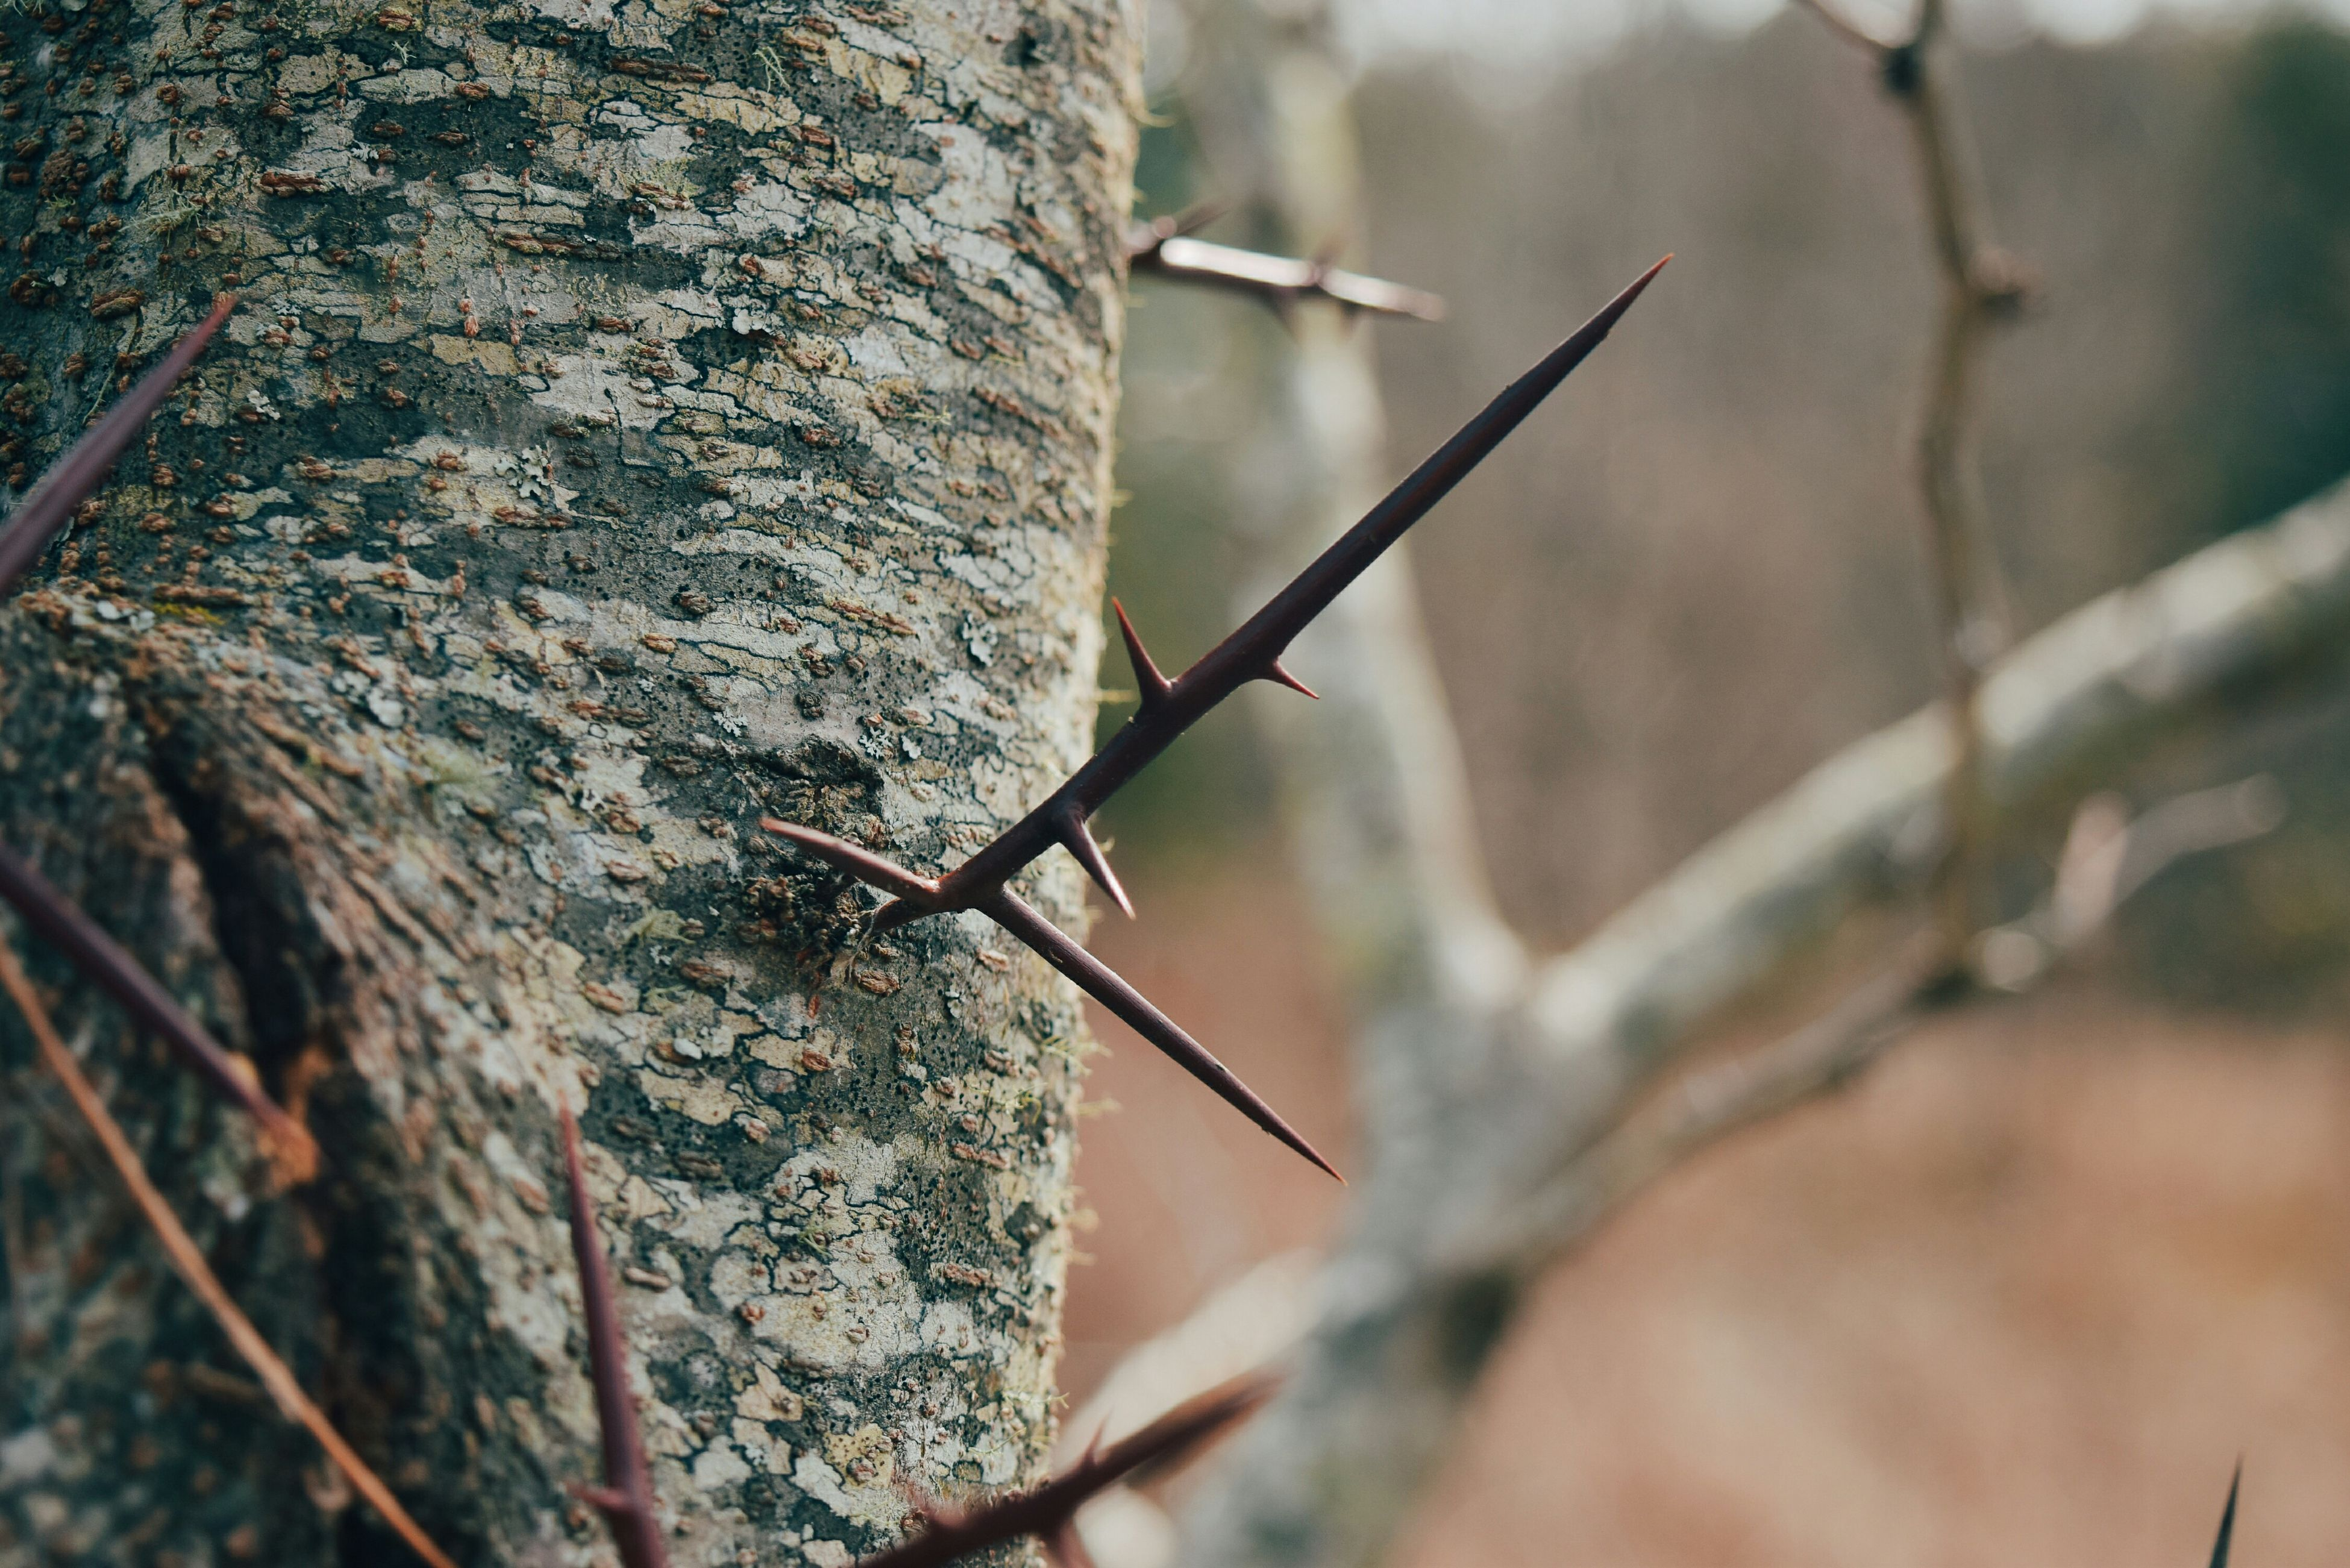 focus on foreground, branch, tree, twig, close-up, nature, selective focus, growth, outdoors, day, forest, plant, tree trunk, no people, tranquility, dry, stem, leaf, beauty in nature, dead plant